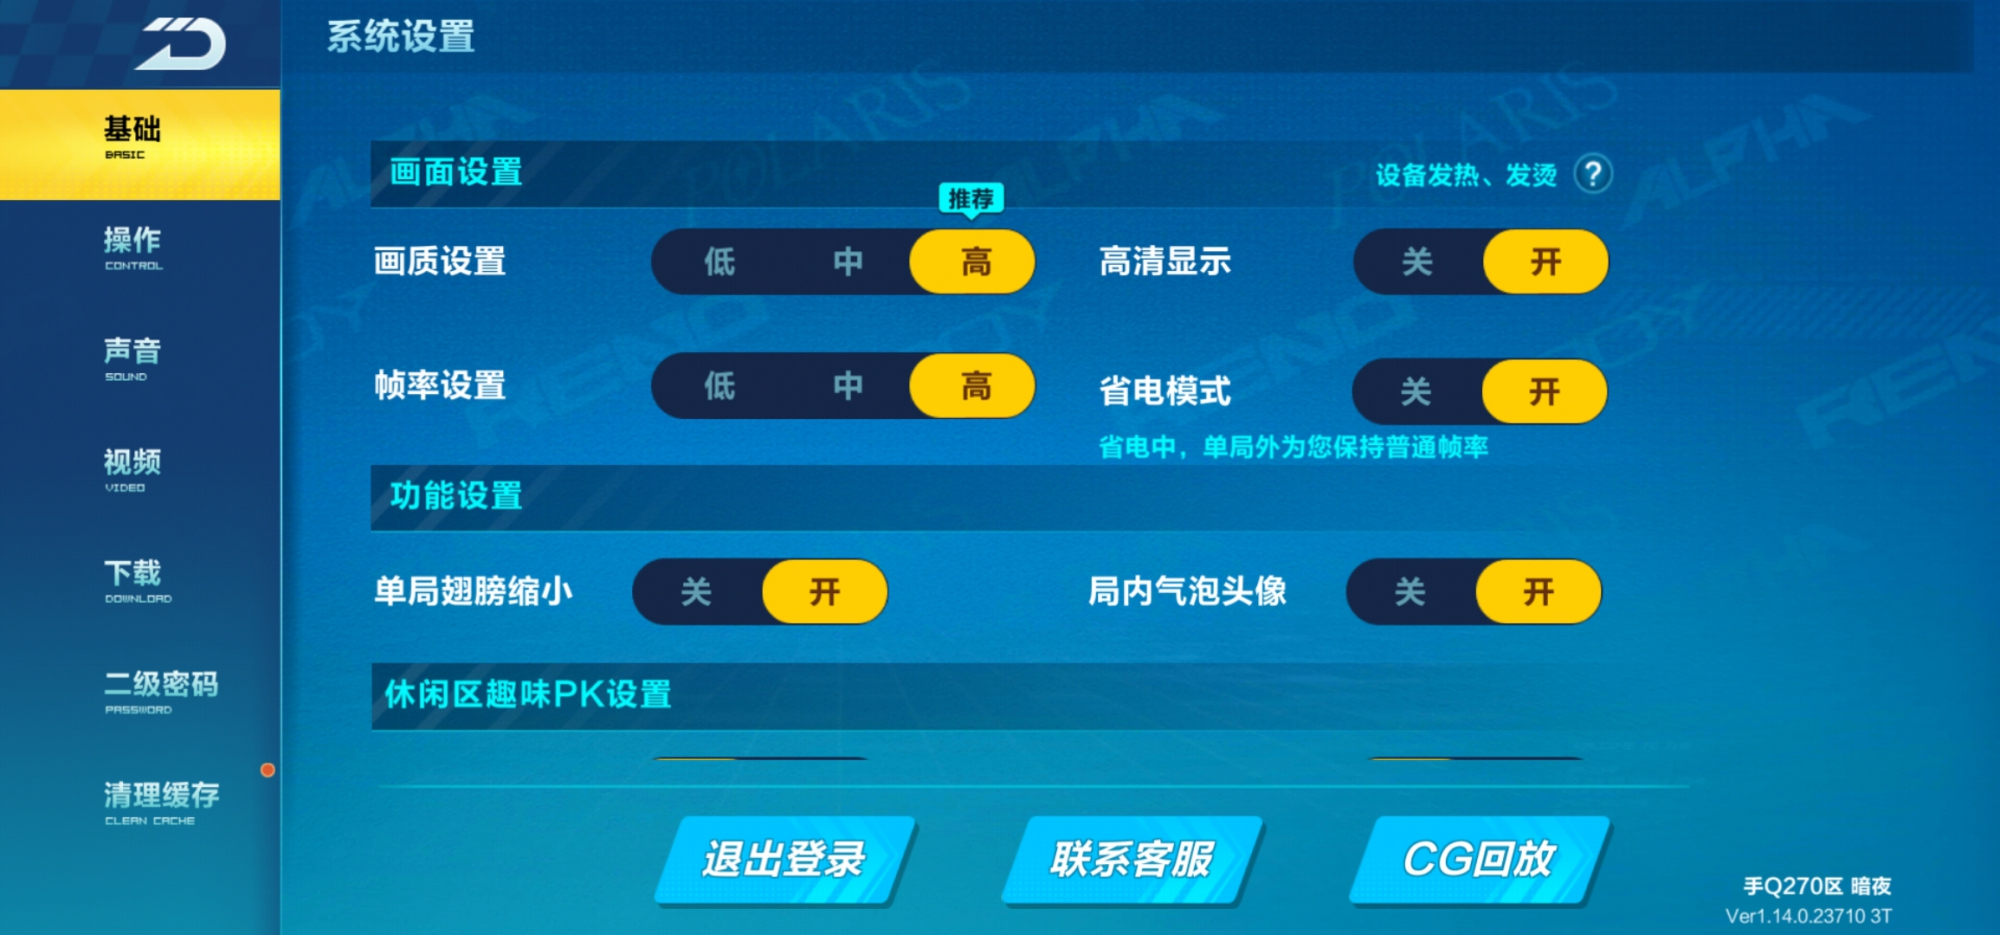 Screenshot_20190730_105849_com.tencent.tmgp.speed.jpg